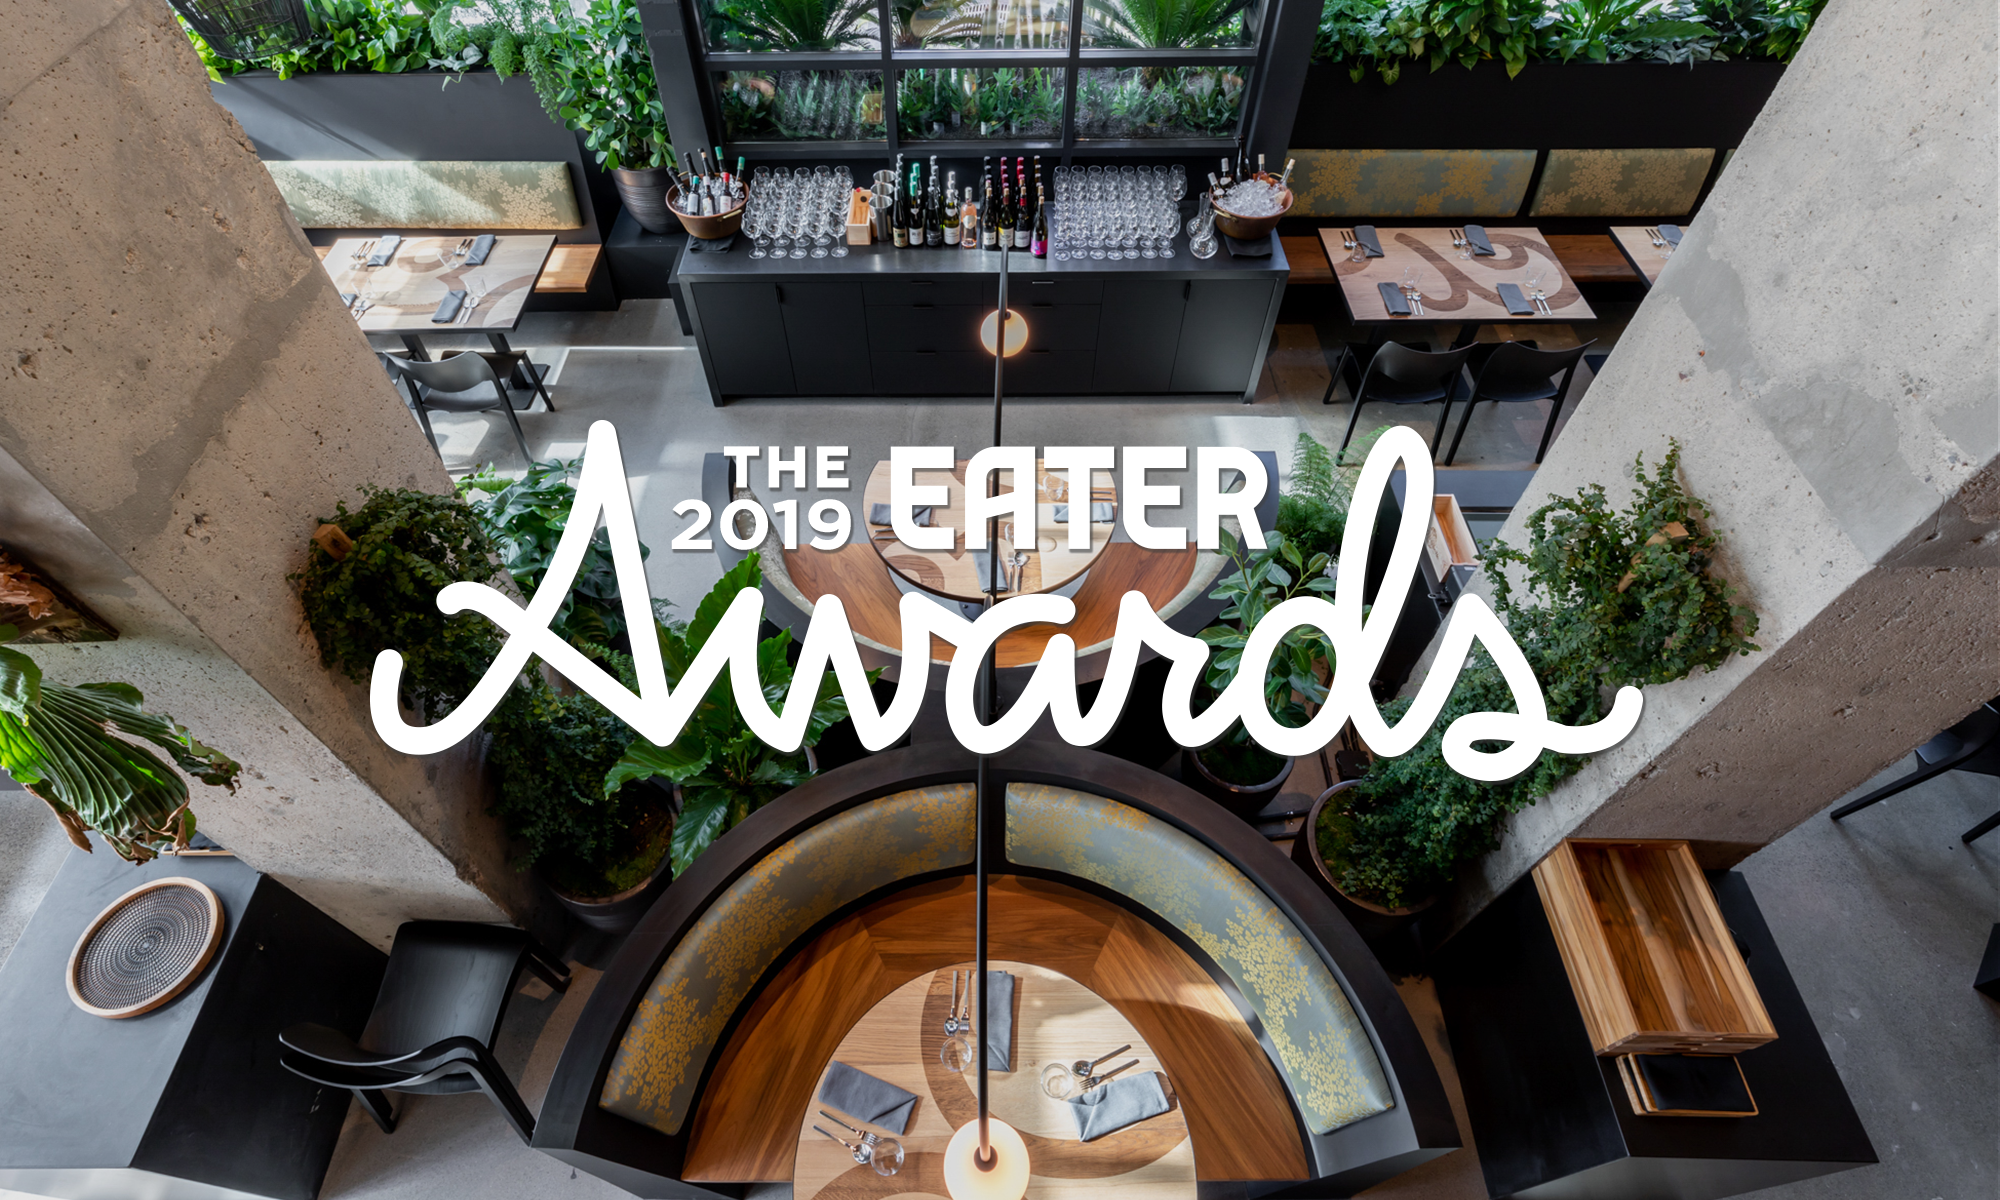 The SF Bay Area's 2019 Eater Awards Winners